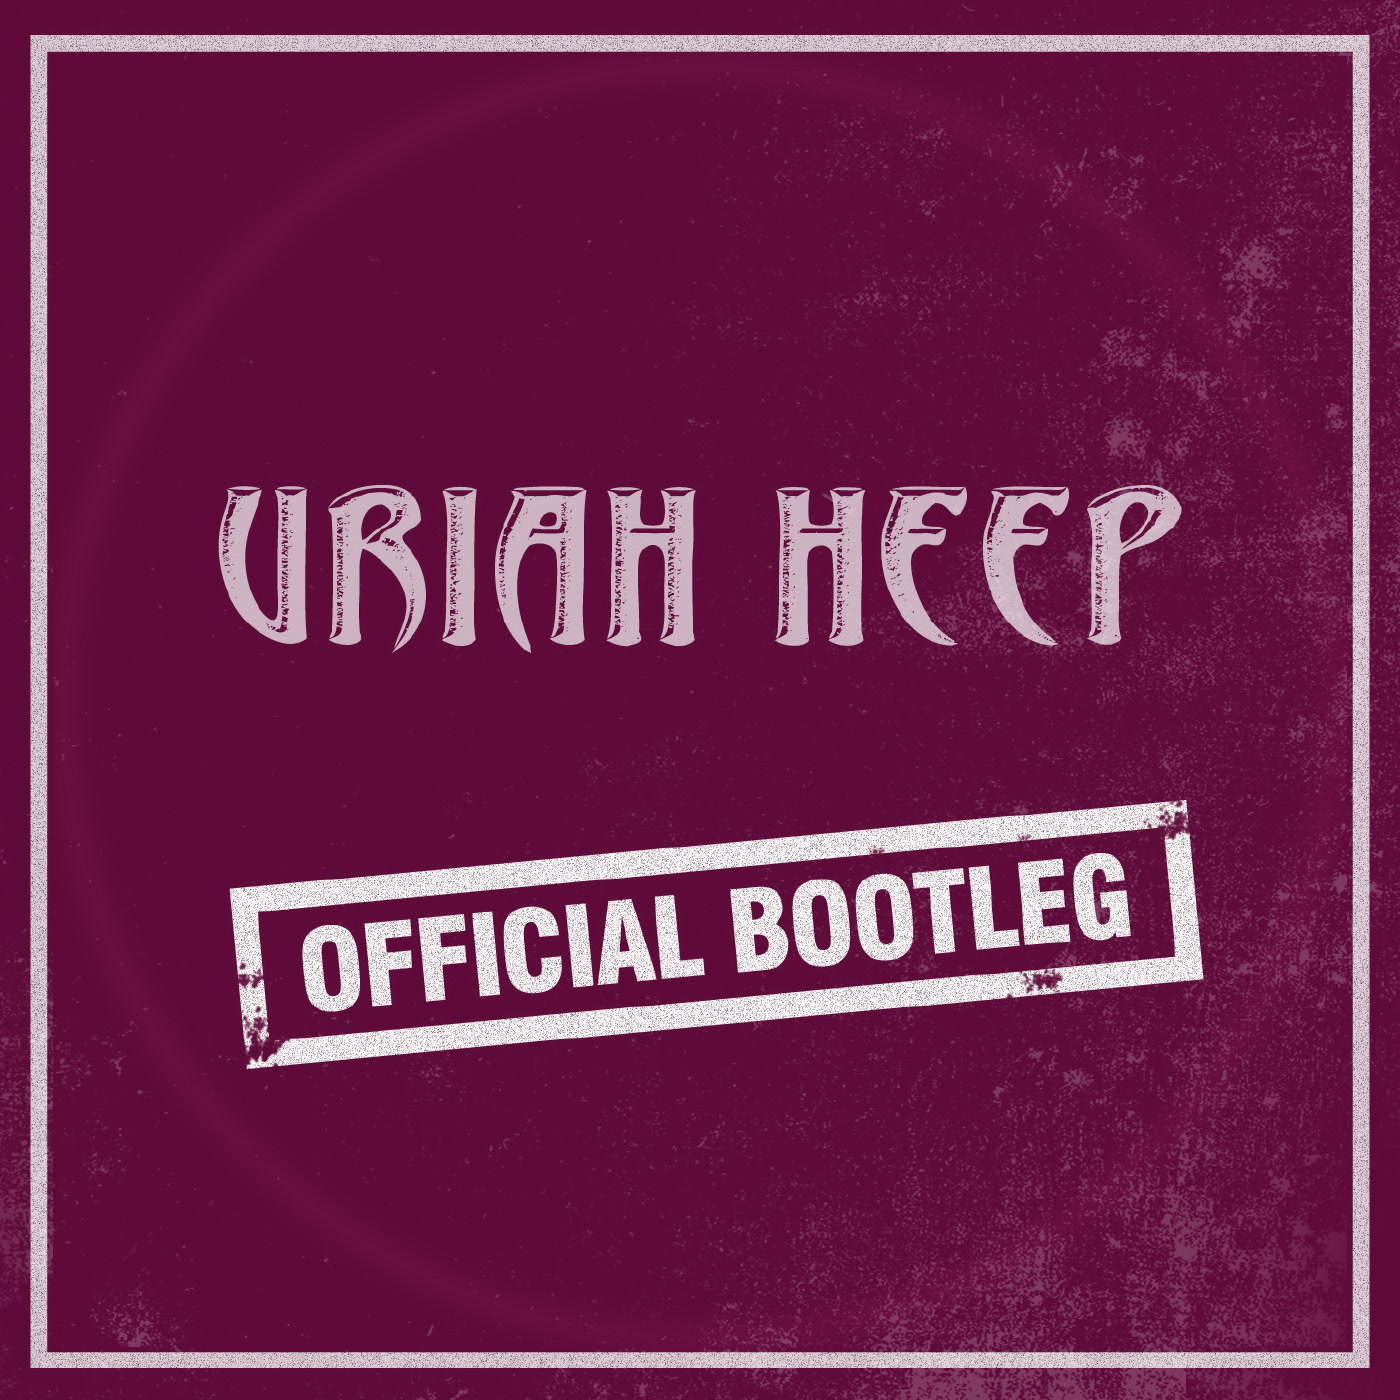 Official Bootleg 2011 - Uriah Heep | Kudos Records